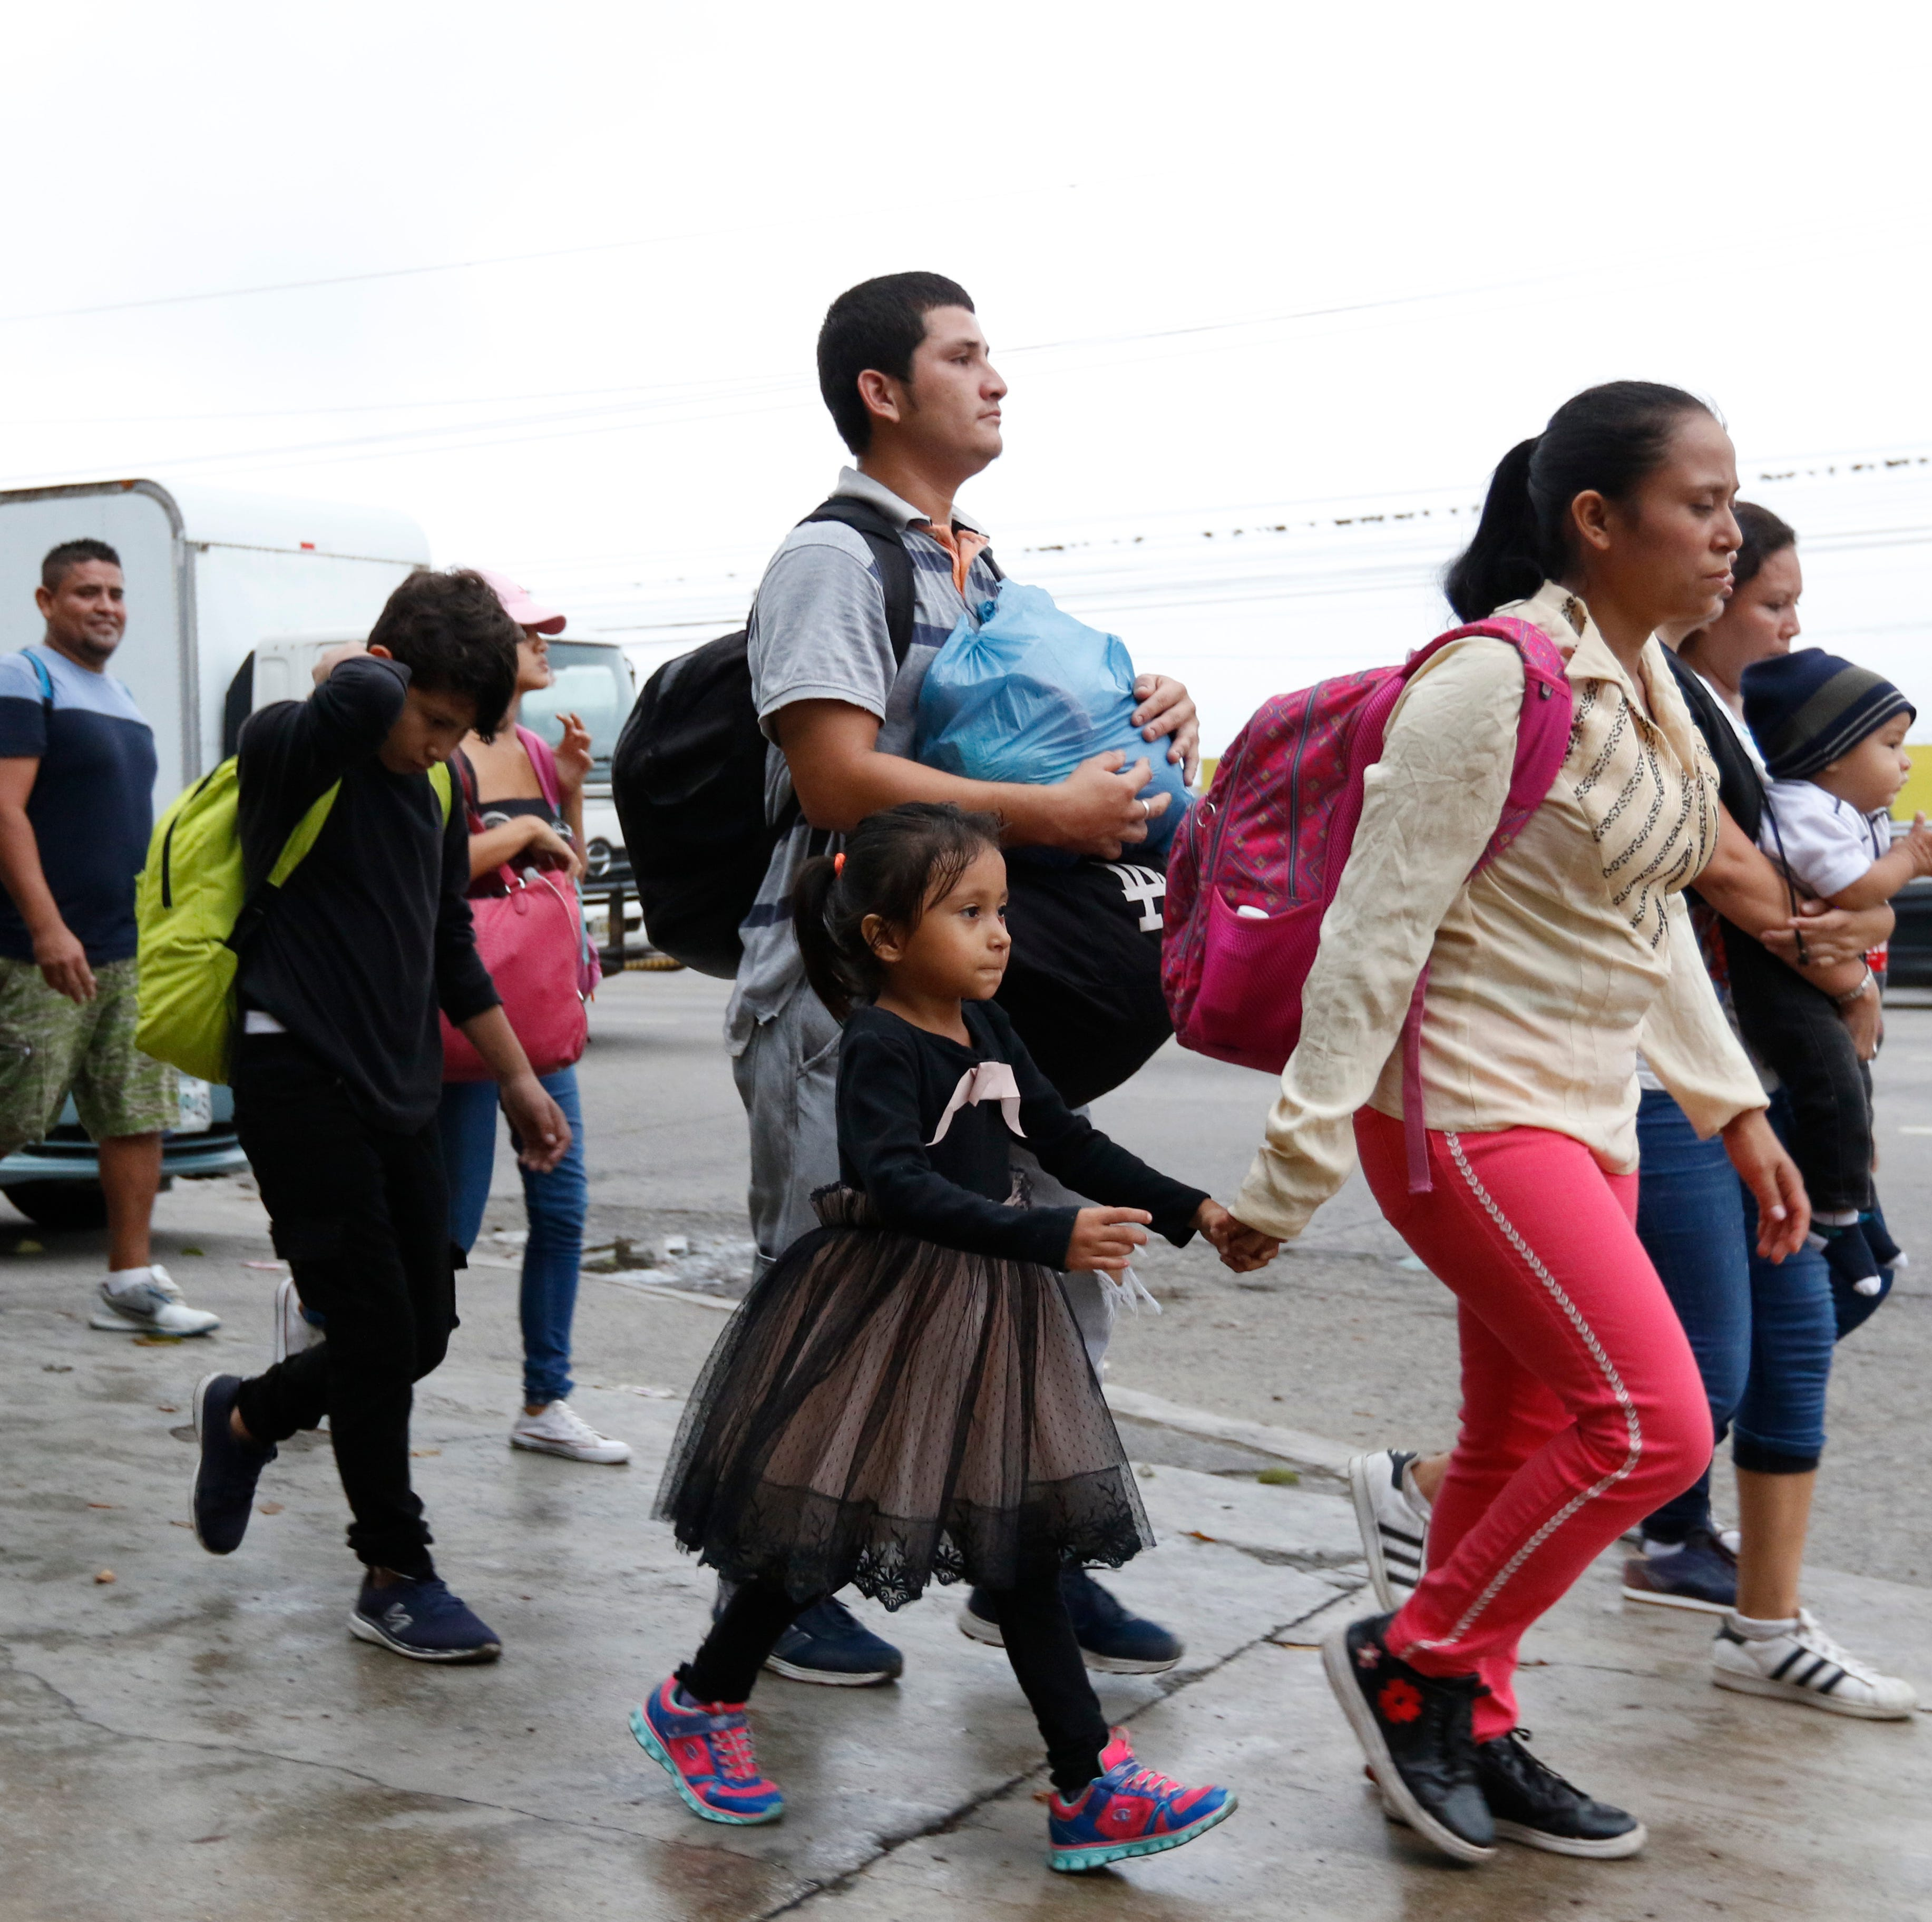 Migrants walk along a highway as a new caravan of several hundred people sets off in hopes of reaching the distant United States, in San Pedro Sula, Honduras, shortly after dawn Wednesday, April 10, 2019. Parents who gathered at the bus station with their children to join the caravan say they can't support their families with what they can earn in Honduras and are seeking better opportunities.